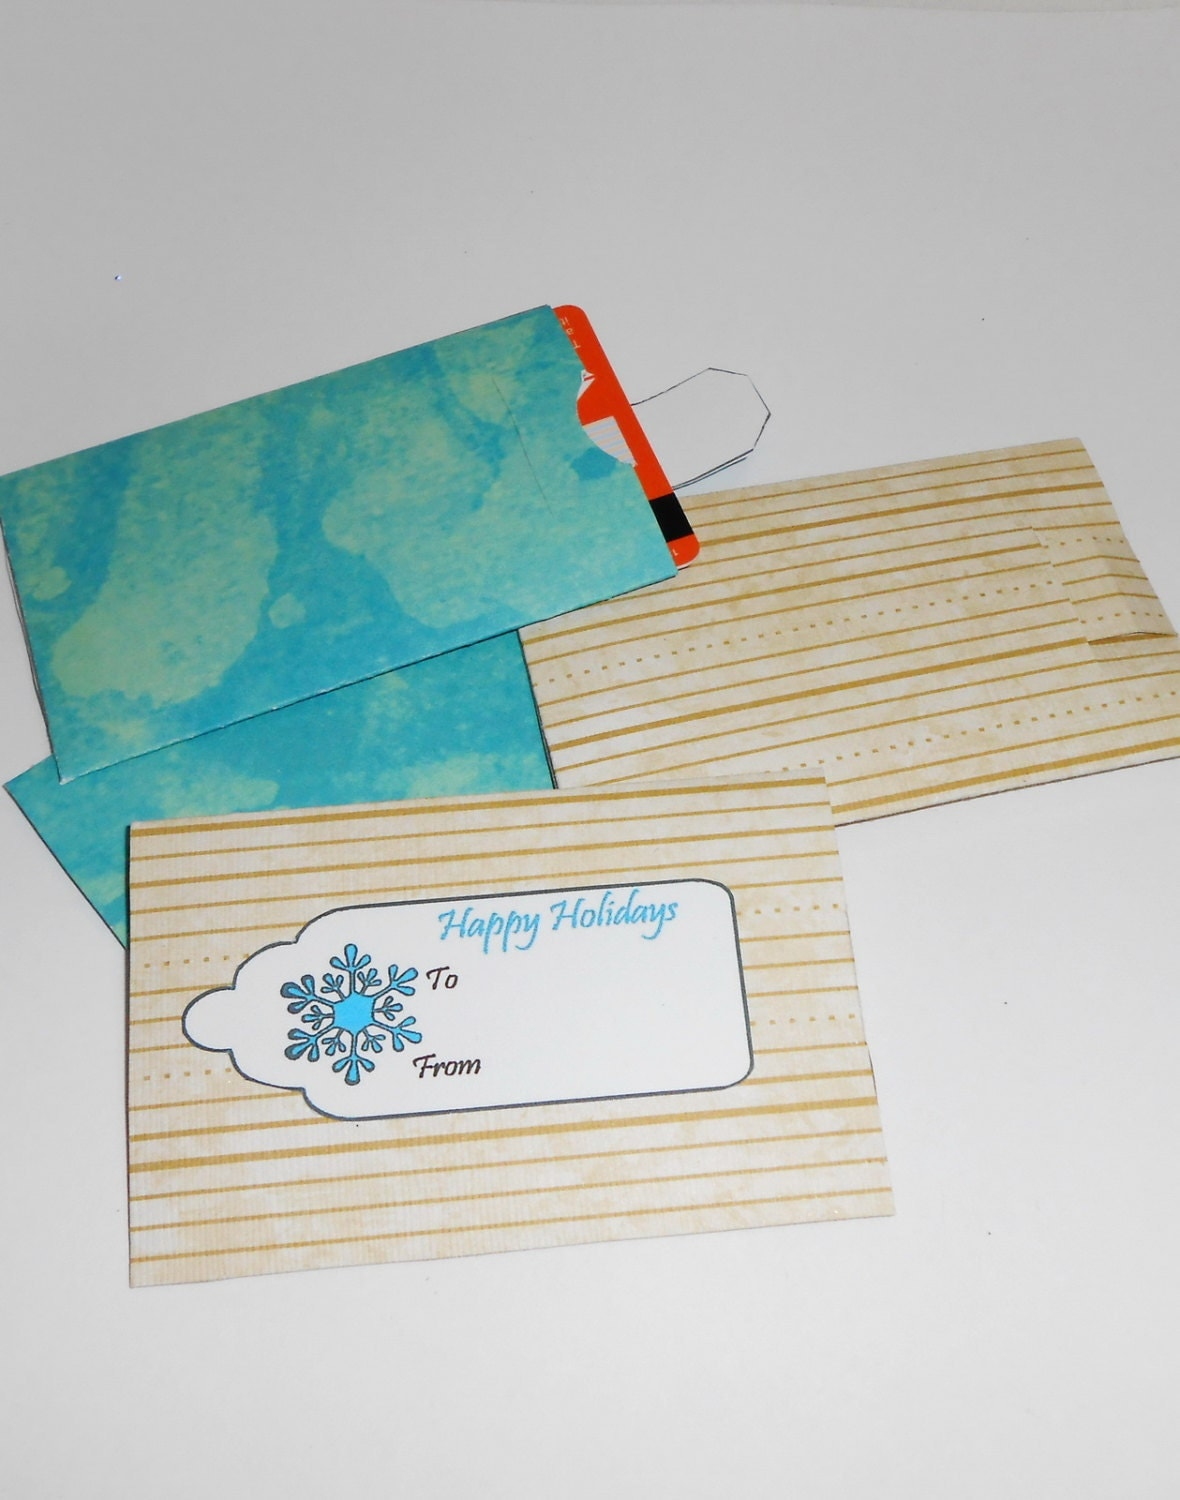 8 5 x 11 envelope template - diy gift card envelopes gift card envelope by tlcreations73